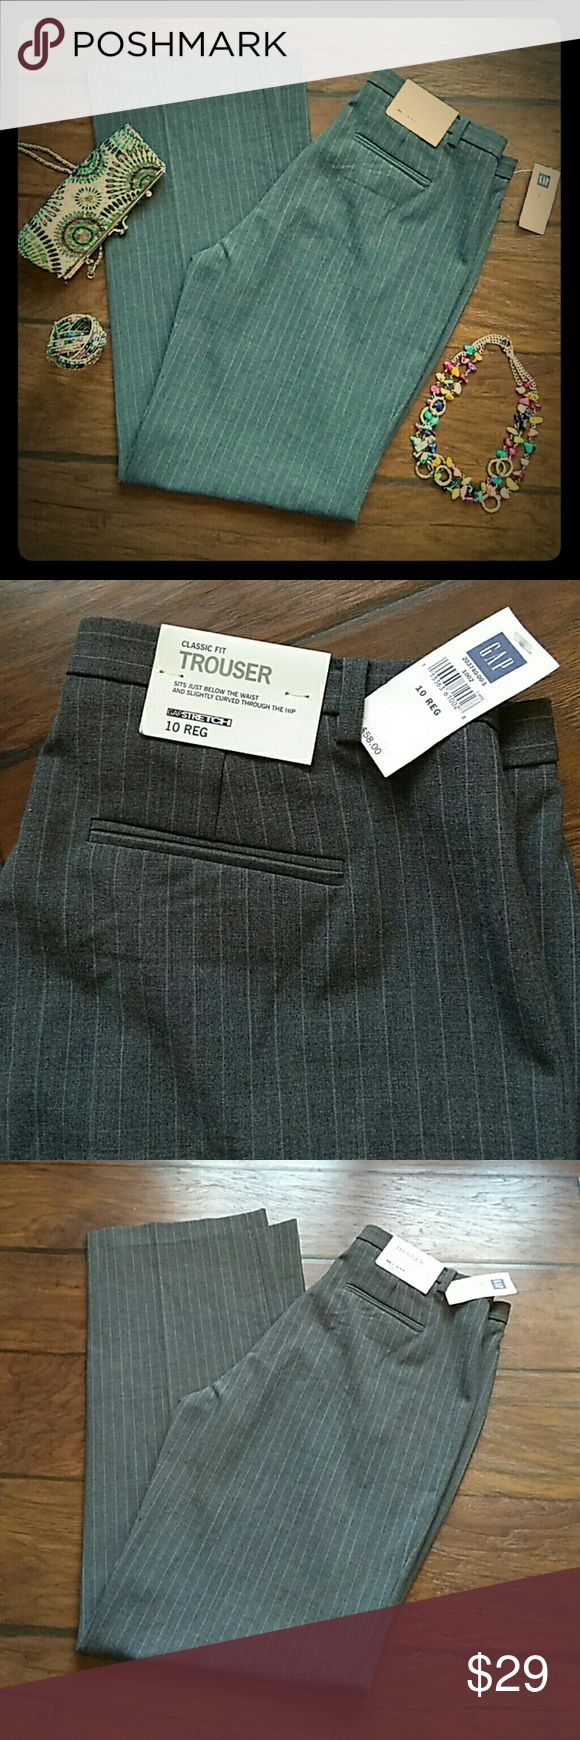 Gap trouser pants size 10 Gray pinstripe Brand new with tags Gap stretch size 10 regular classic fit trouser just below the waist and slightly curved through the hip grey pinstripe pattern GAP Pants Trousers